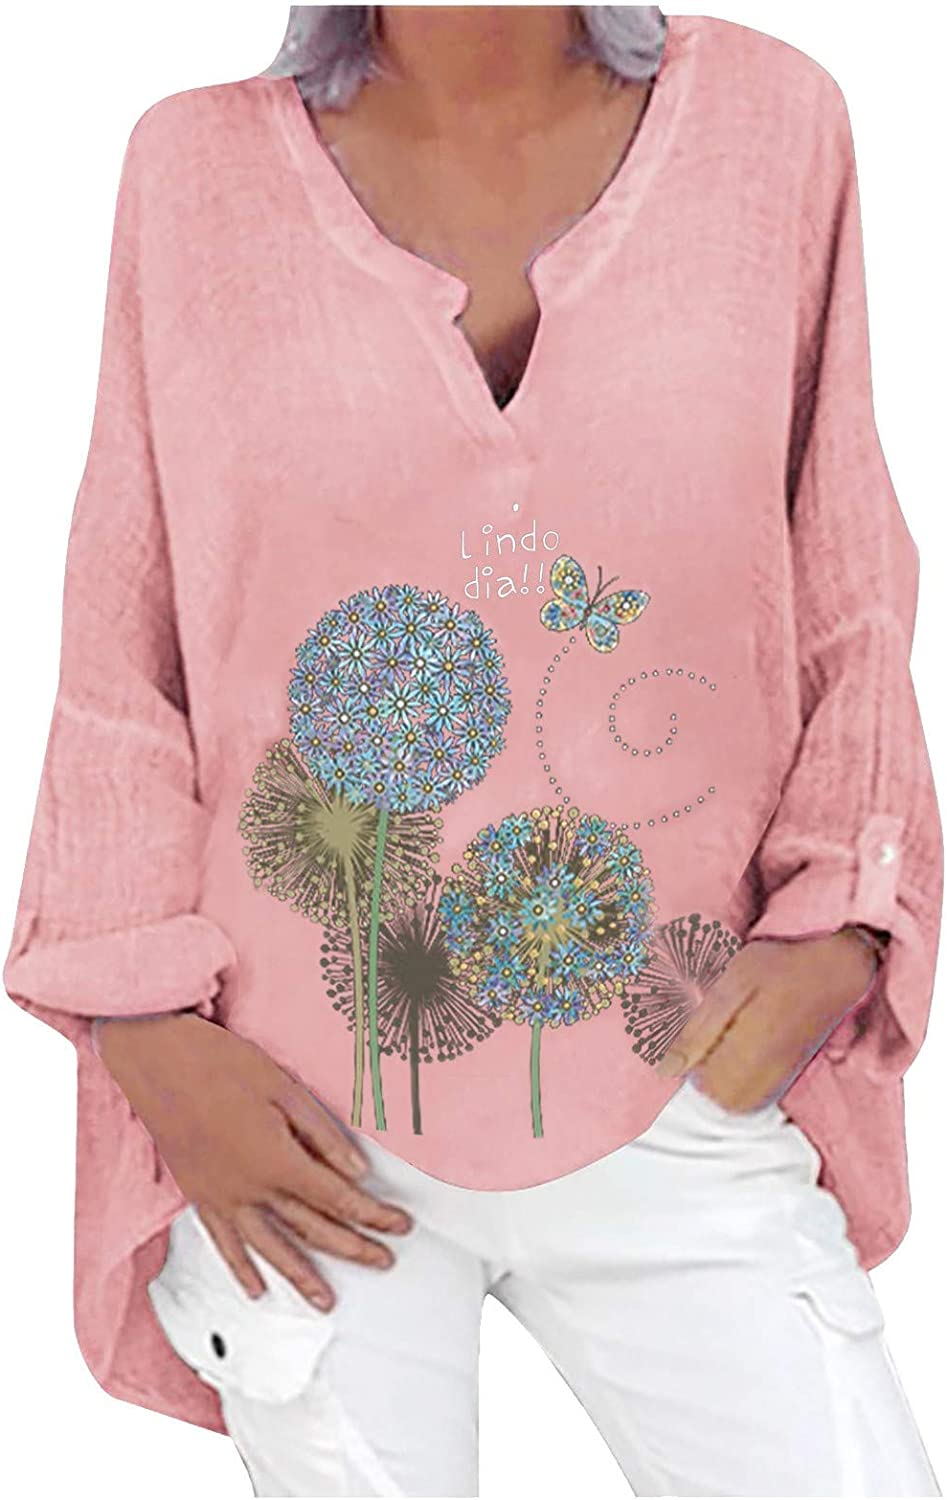 Aiouios Sweatshirts for Women Graphic Floral Print V-Neck Long Sleeves Pullover Hoodies Lightweight Casual Tnuic Blouses